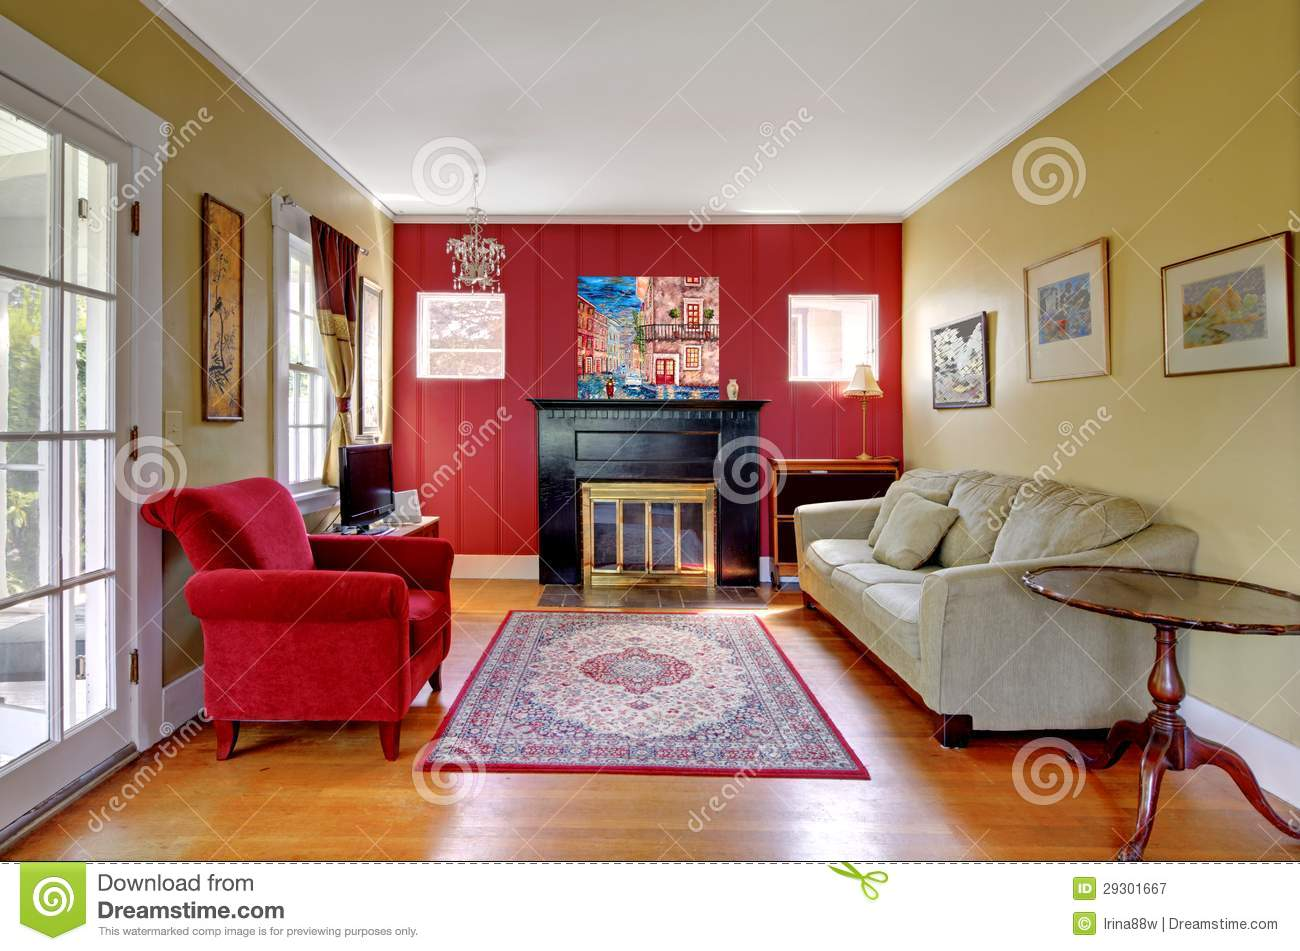 Living room with red and yellow walls and fireplace for Red and yellow living room ideas